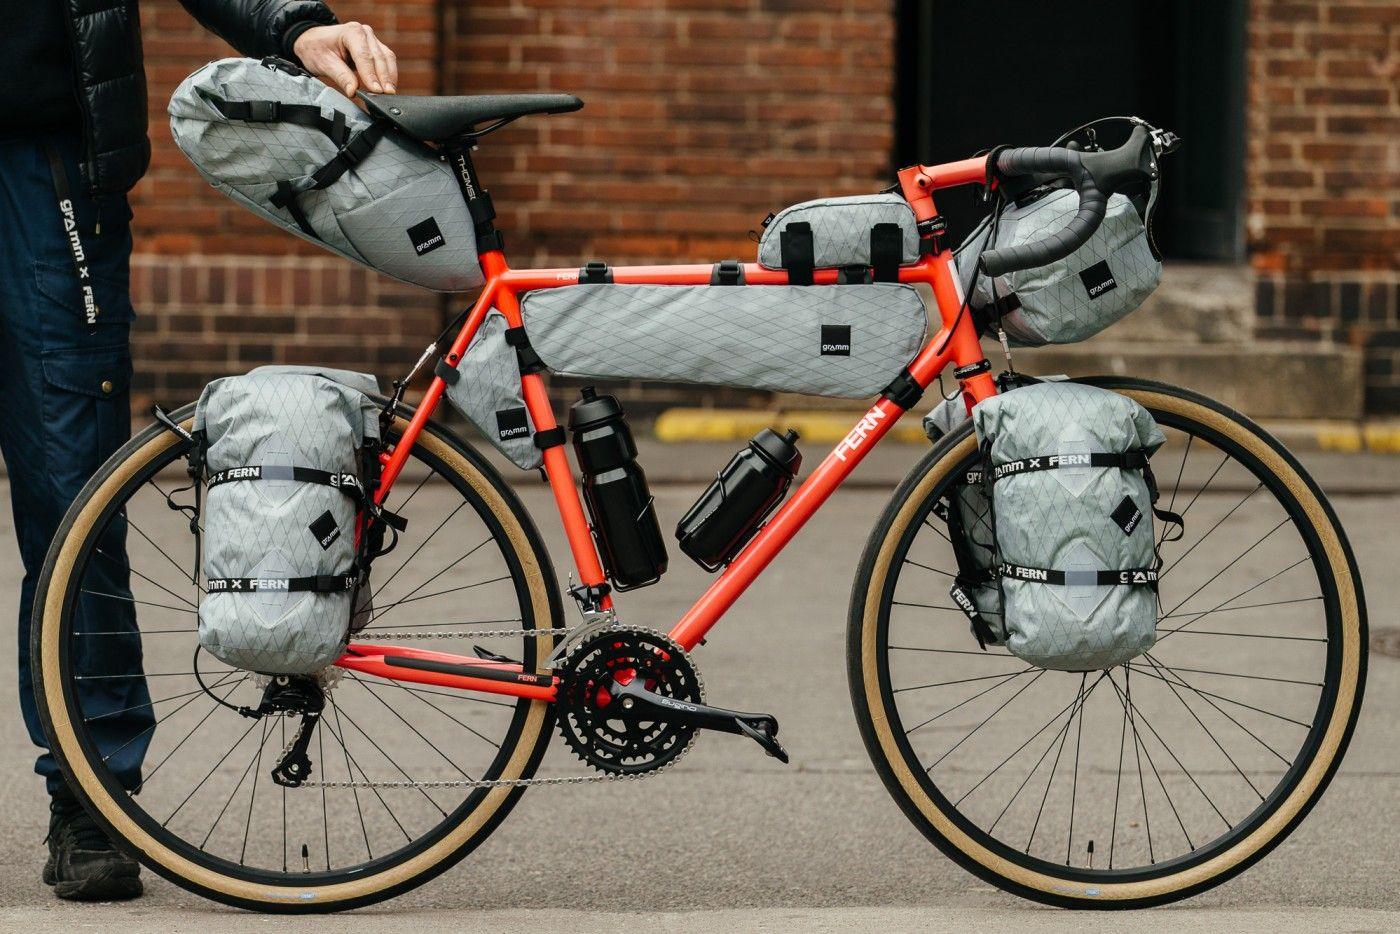 Fern Cycles Chacha Touring Bike With Gramm Bags Touring Bike Bike Camping Touring Bicycles